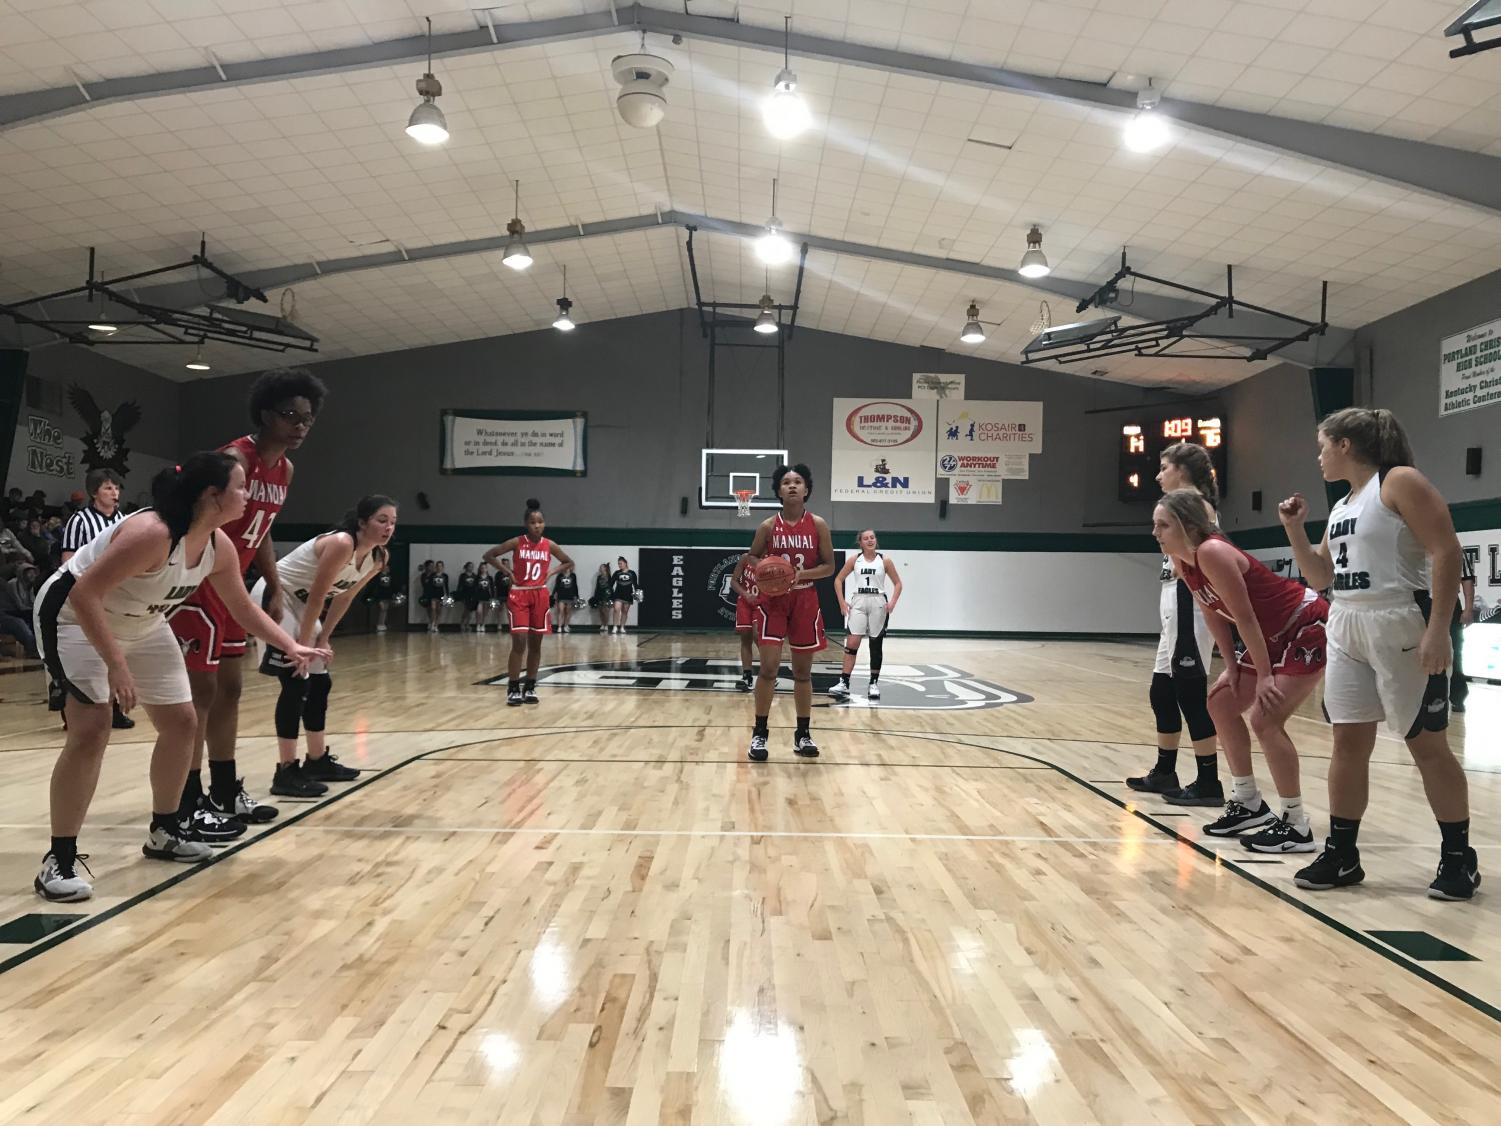 Payton Bush (9, #23) sets up for a free throw before making both shots. Photo courtesy of Karlie Brockman.